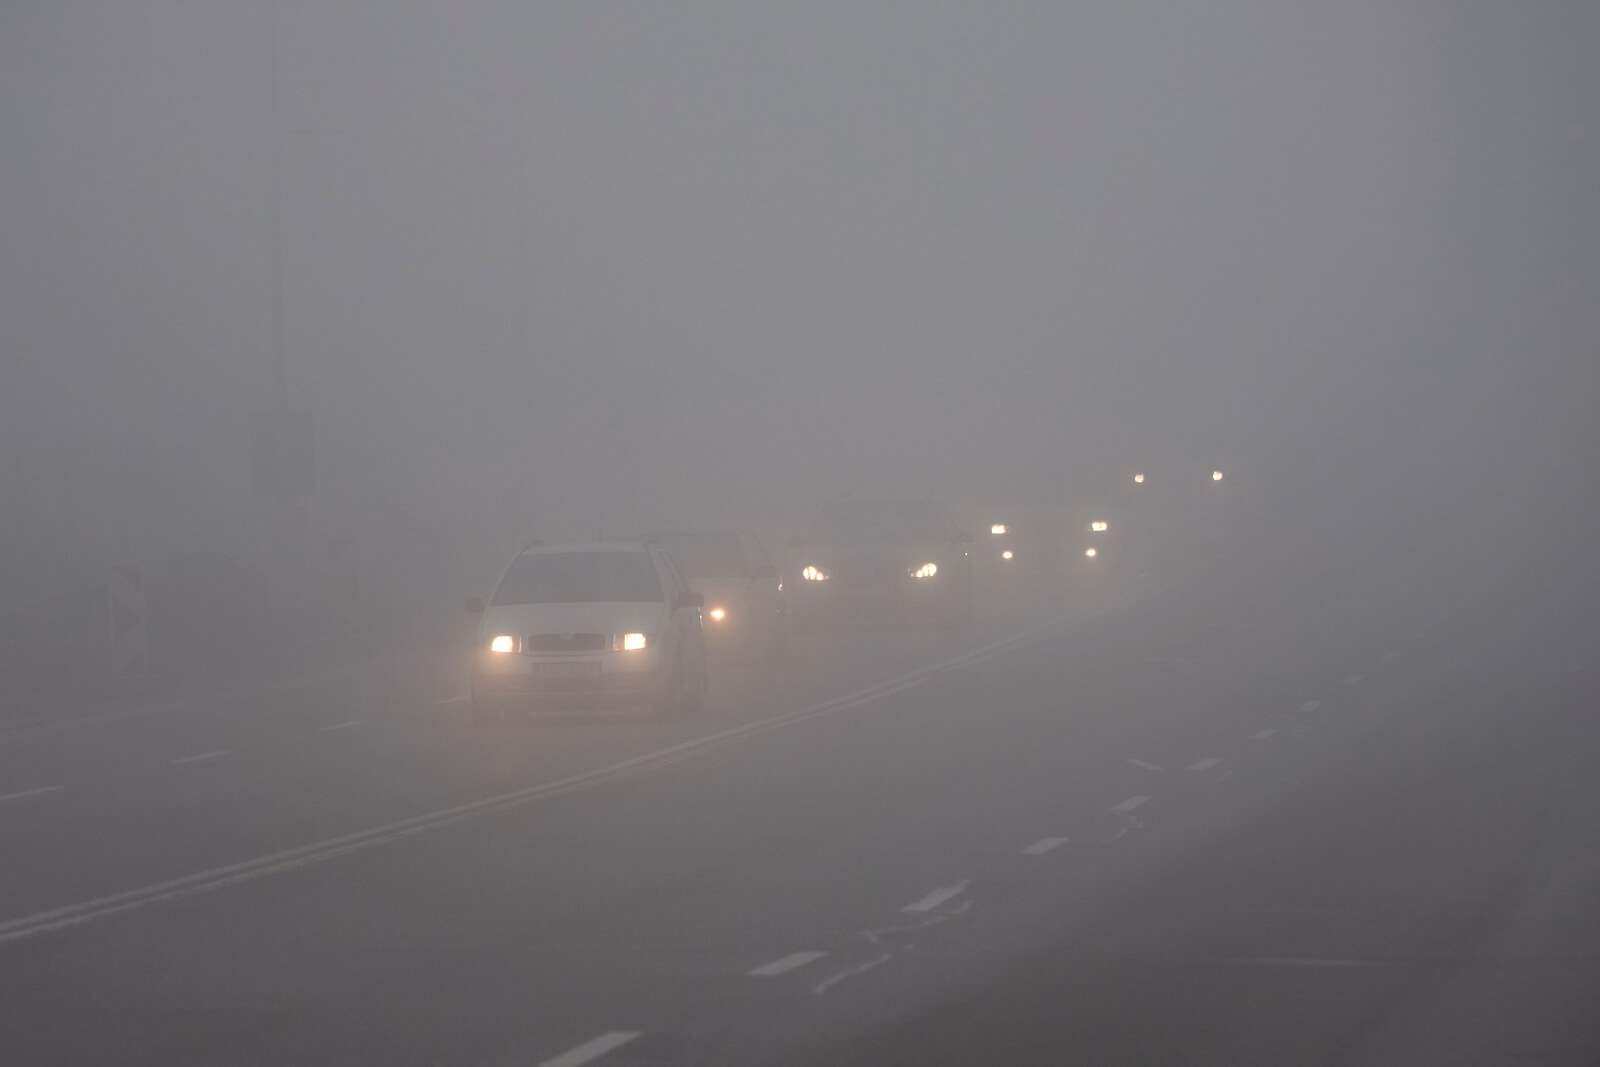 car headlights emerging out of fog. Without vehicle safety check, your lights might not work and leave you in danger!